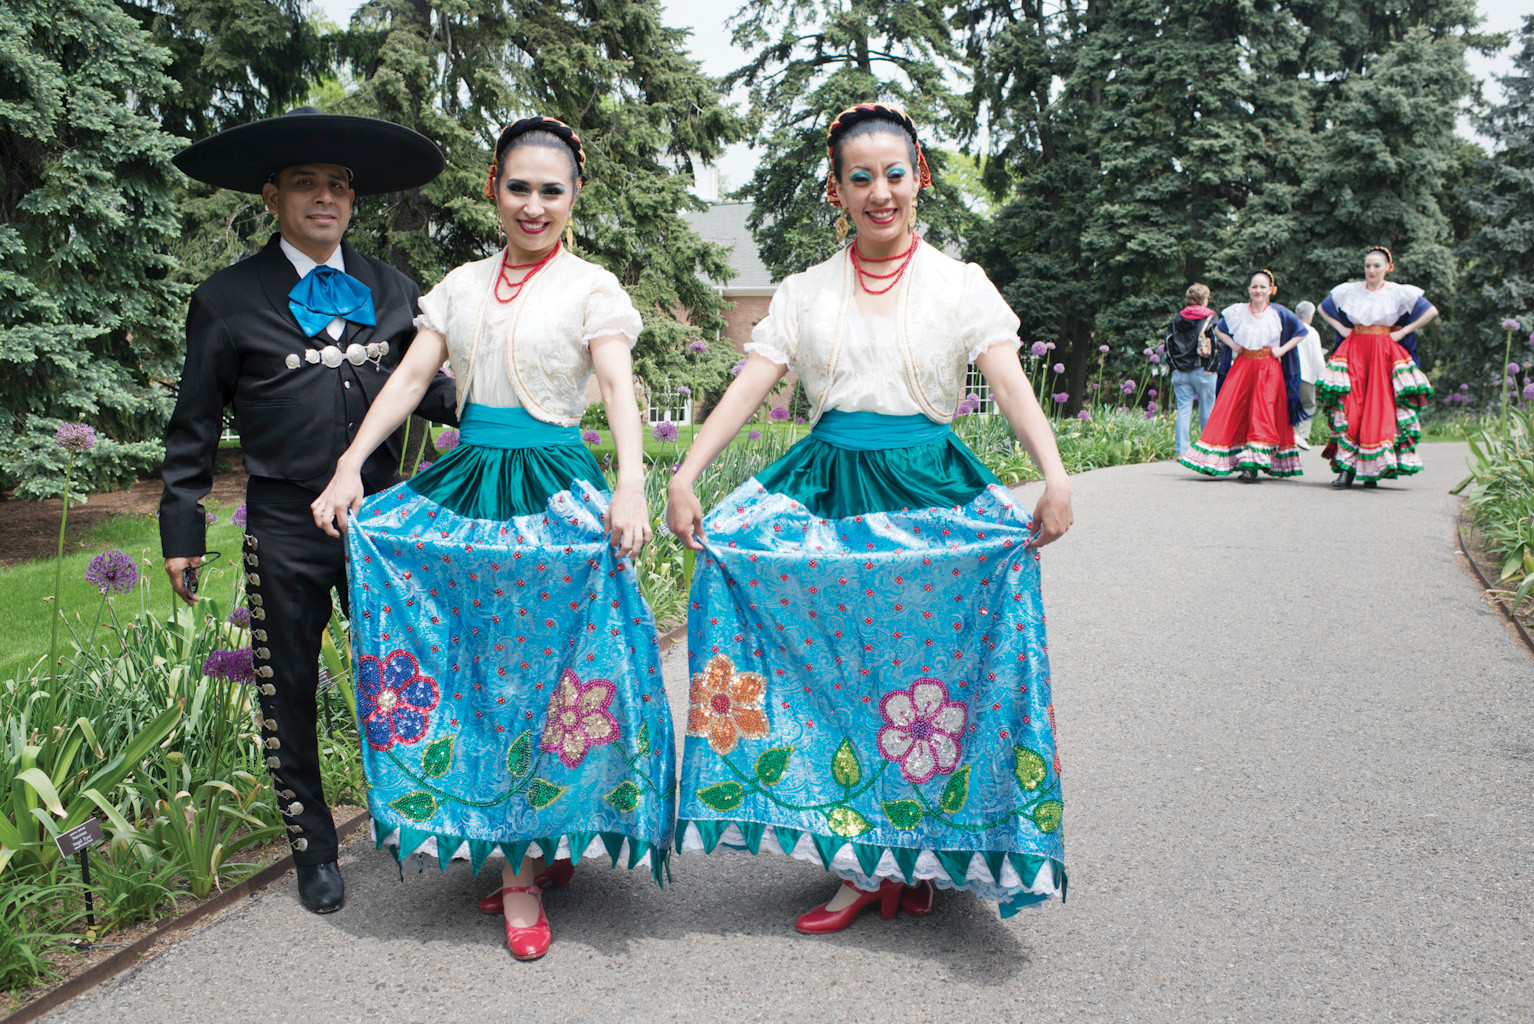 Members of the Calpulli Mexican Dance Company, based in Elmhurst, pose for a photo before running off to a performance during the 'Frida Kahlo: Art, Garden, Life' exhibit which opened for members on May 15.